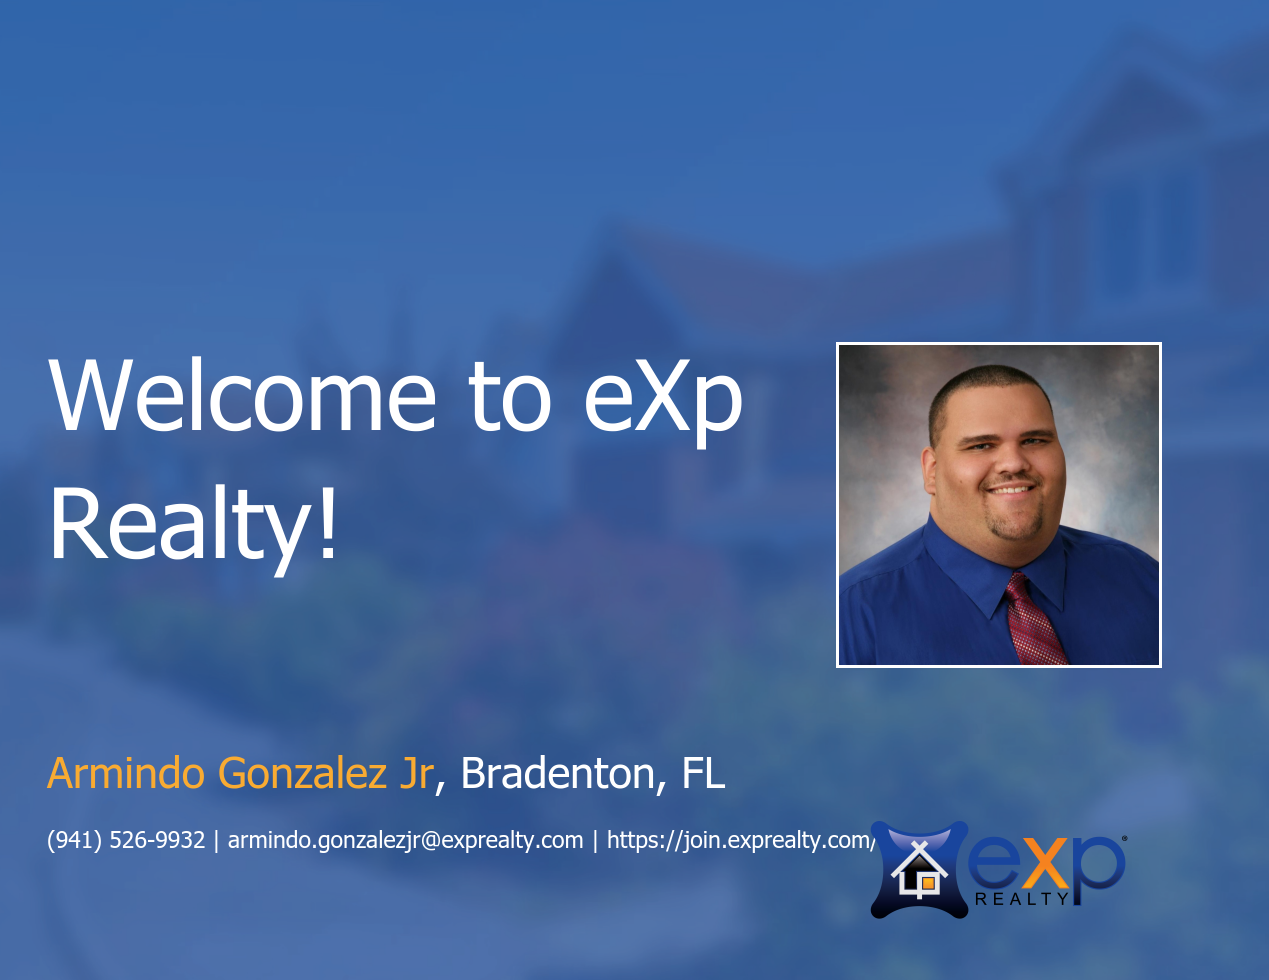 eXp Realty Welcomes Armindo Gonzalez Jr!